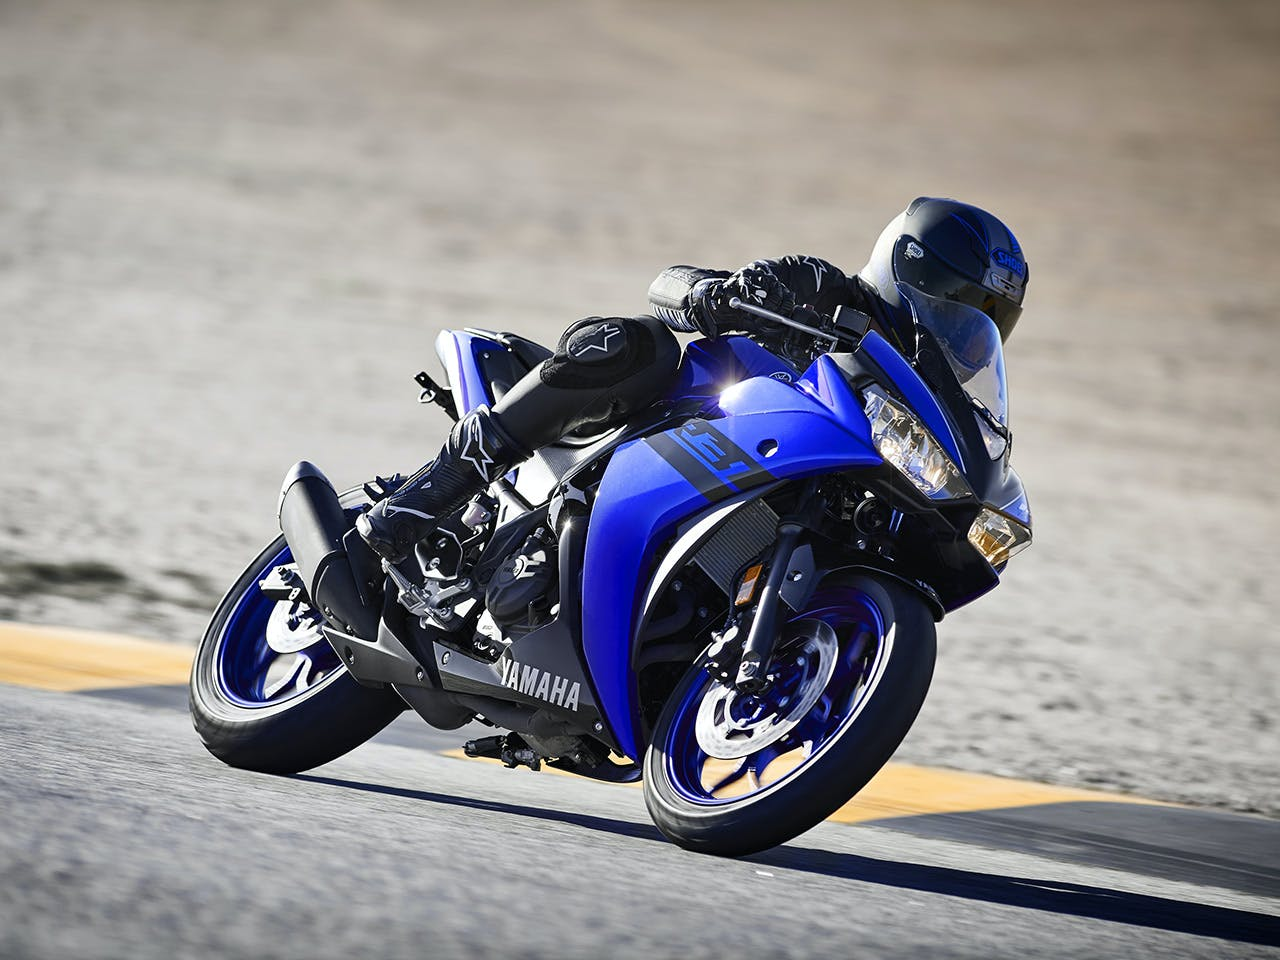 Yamaha YZF-R3 2018 being ridden on a race track